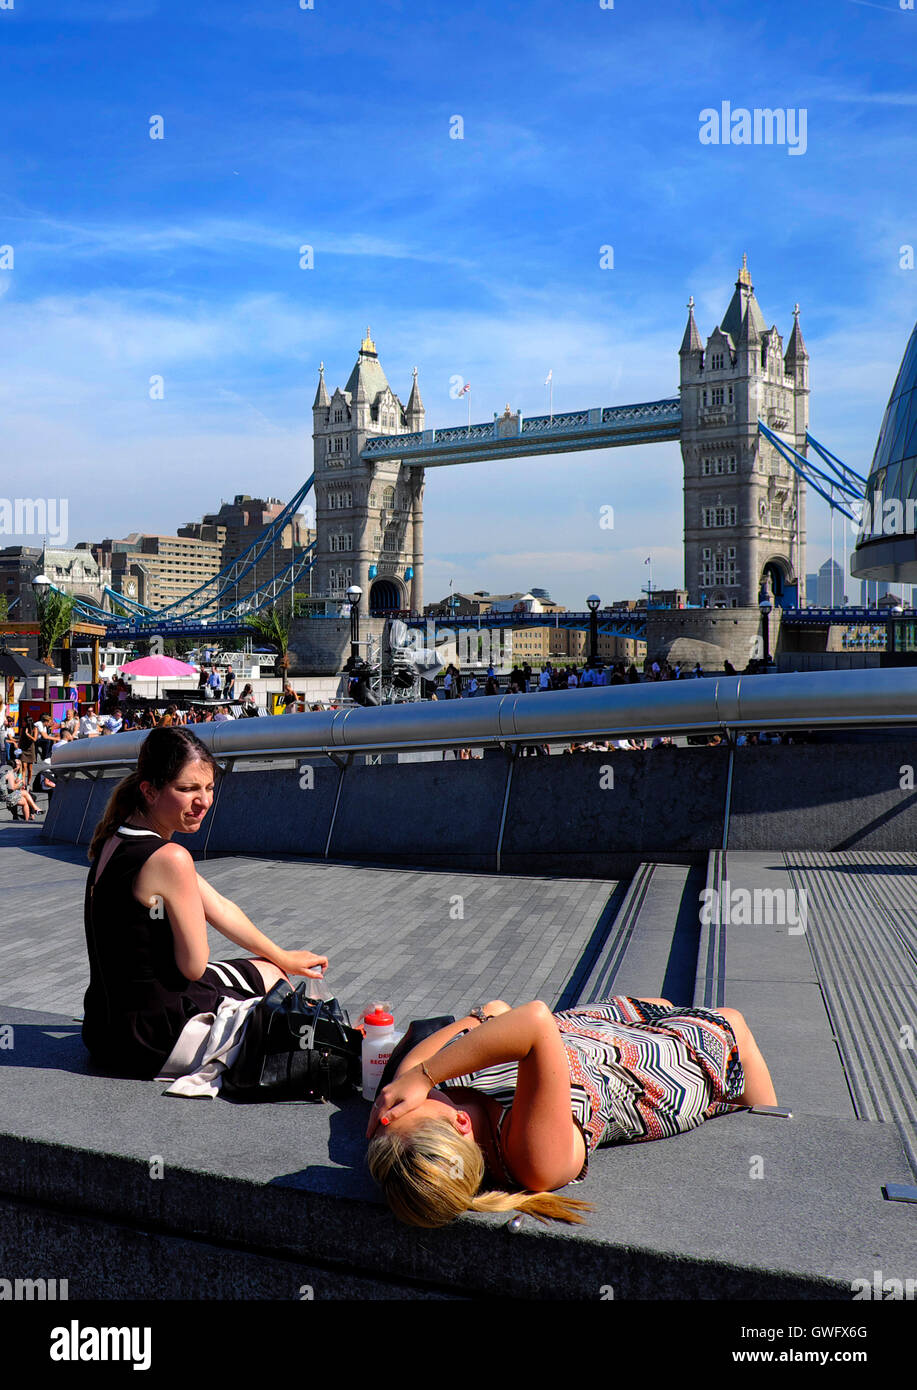 London, UK. 13th September, 2016. UK Weather:. Office workers bask in the 30 degree heat during their lunch hour - Stock Image